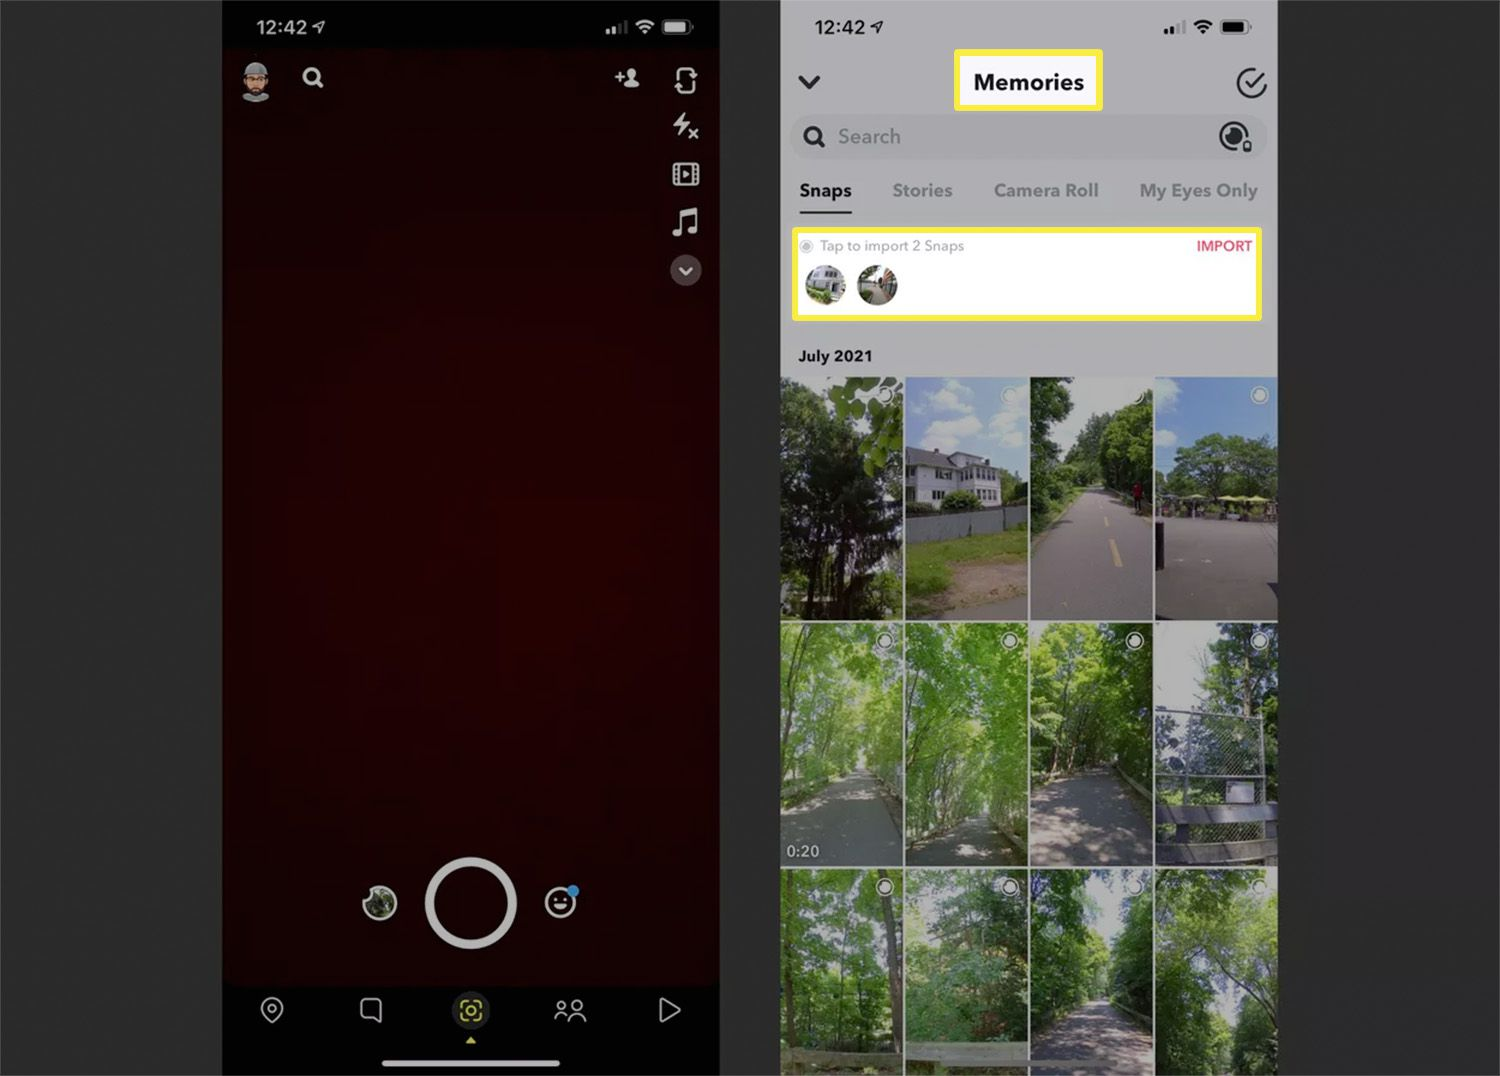 Steps to import Snaps into the Snapchat app on an iPhone.